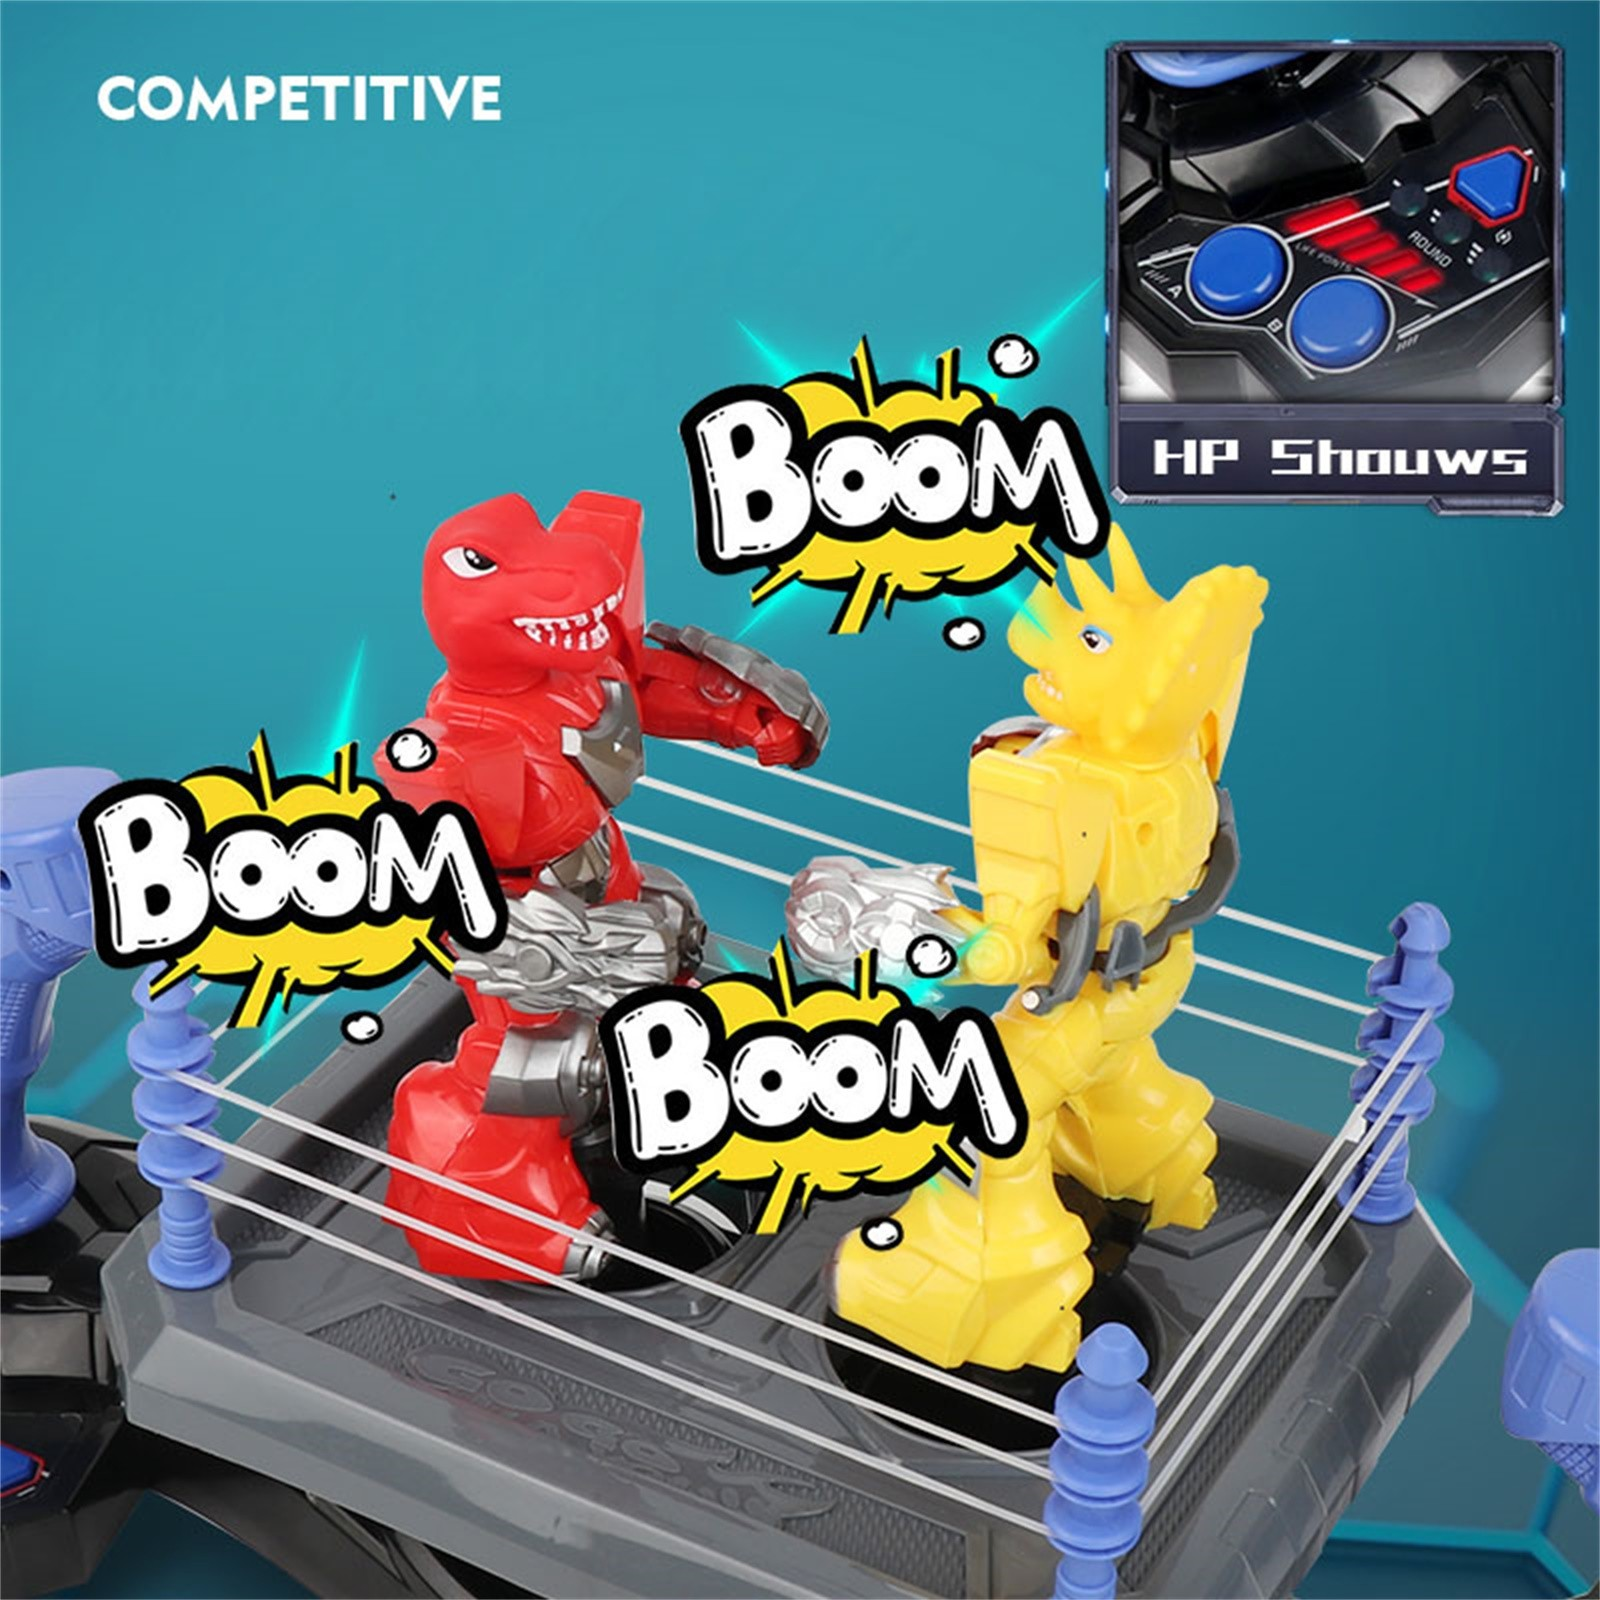 2PC Novel Robot Realistic Game Animal Dinosaur Model RC Boxing Robot Double Fight Childrens Kids Adults Party Leisure Toys Gifts